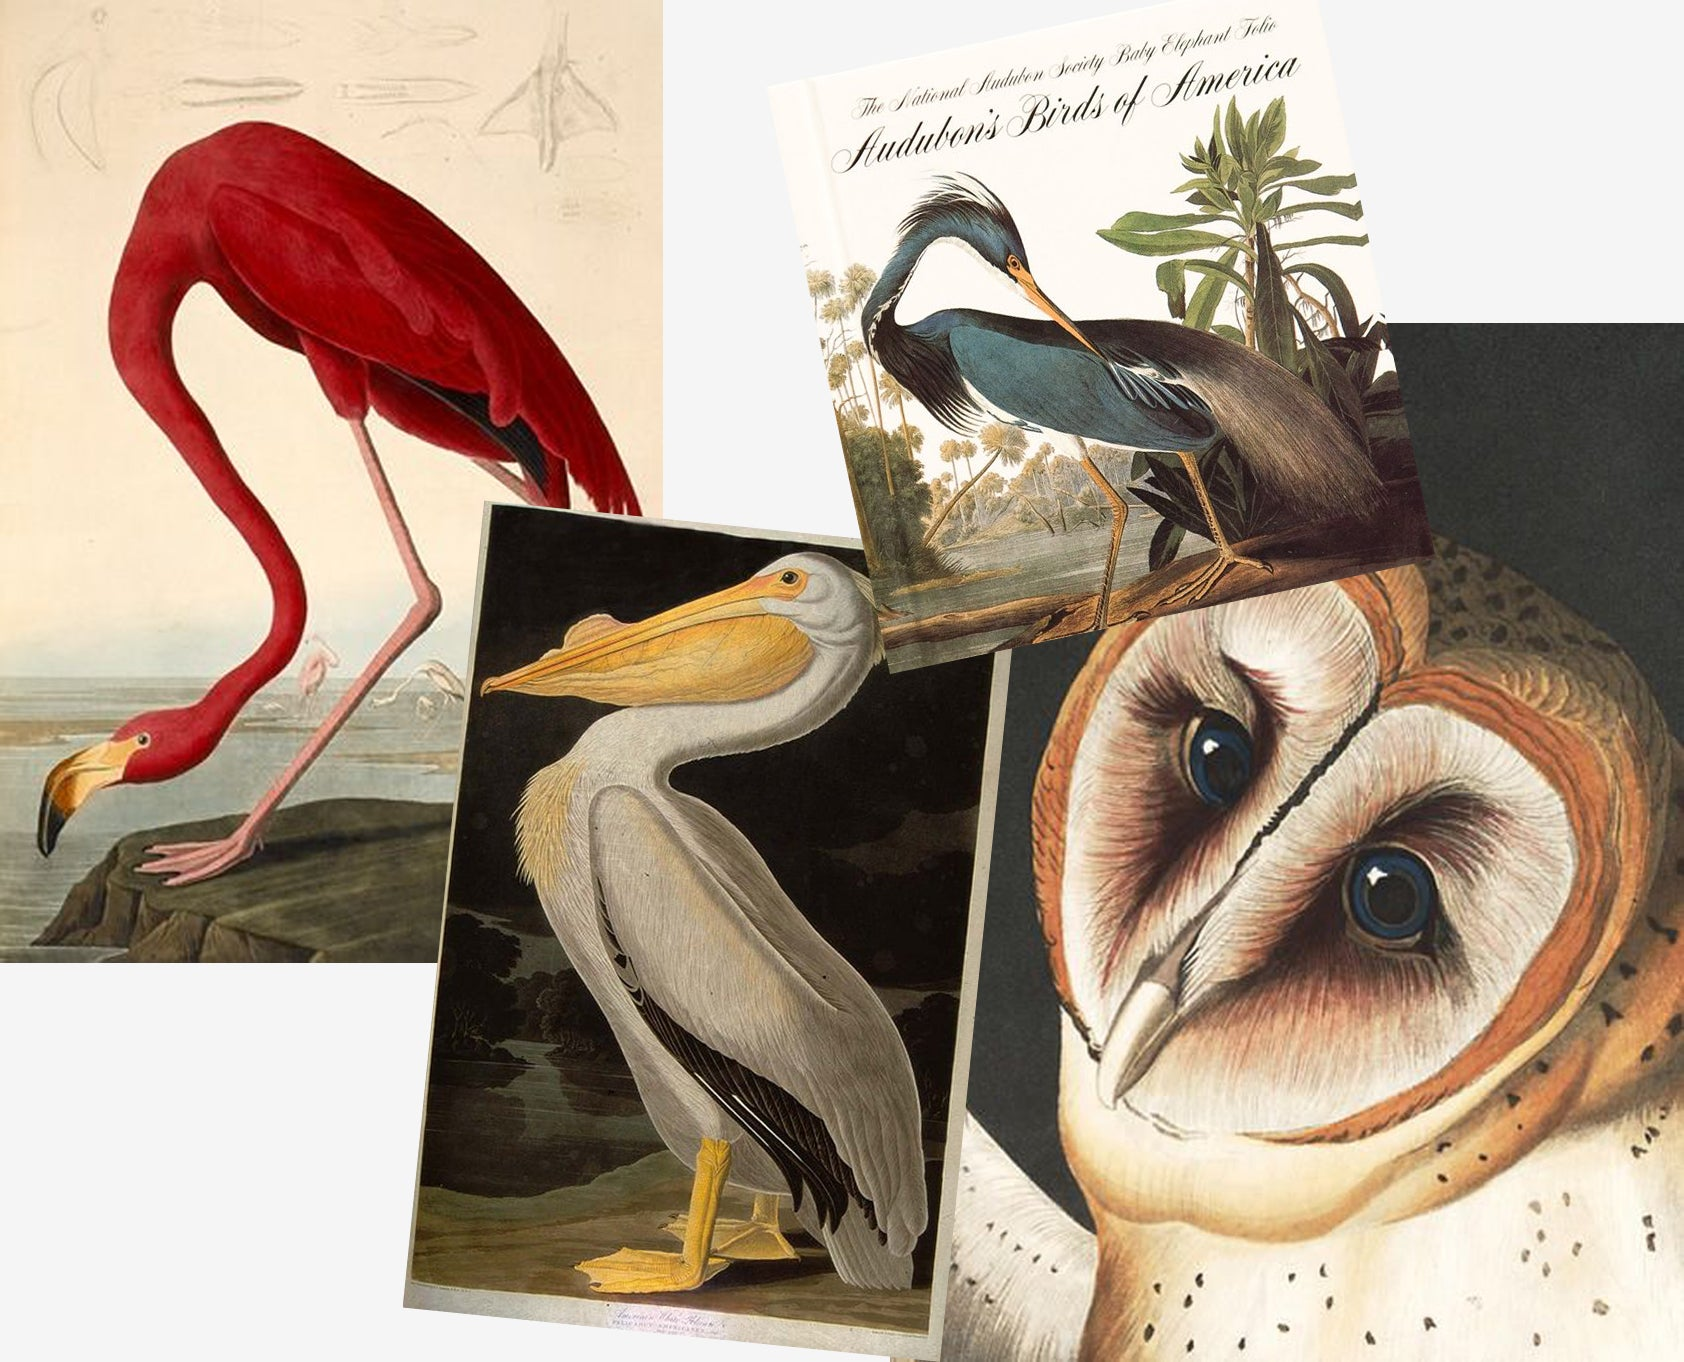 The work of John James Audubon was a great influence on the Audubon design by Emma J Shipley. The explorer, ornithologist and botanical painter created meticulous wildlife illustrations in the 19th century.